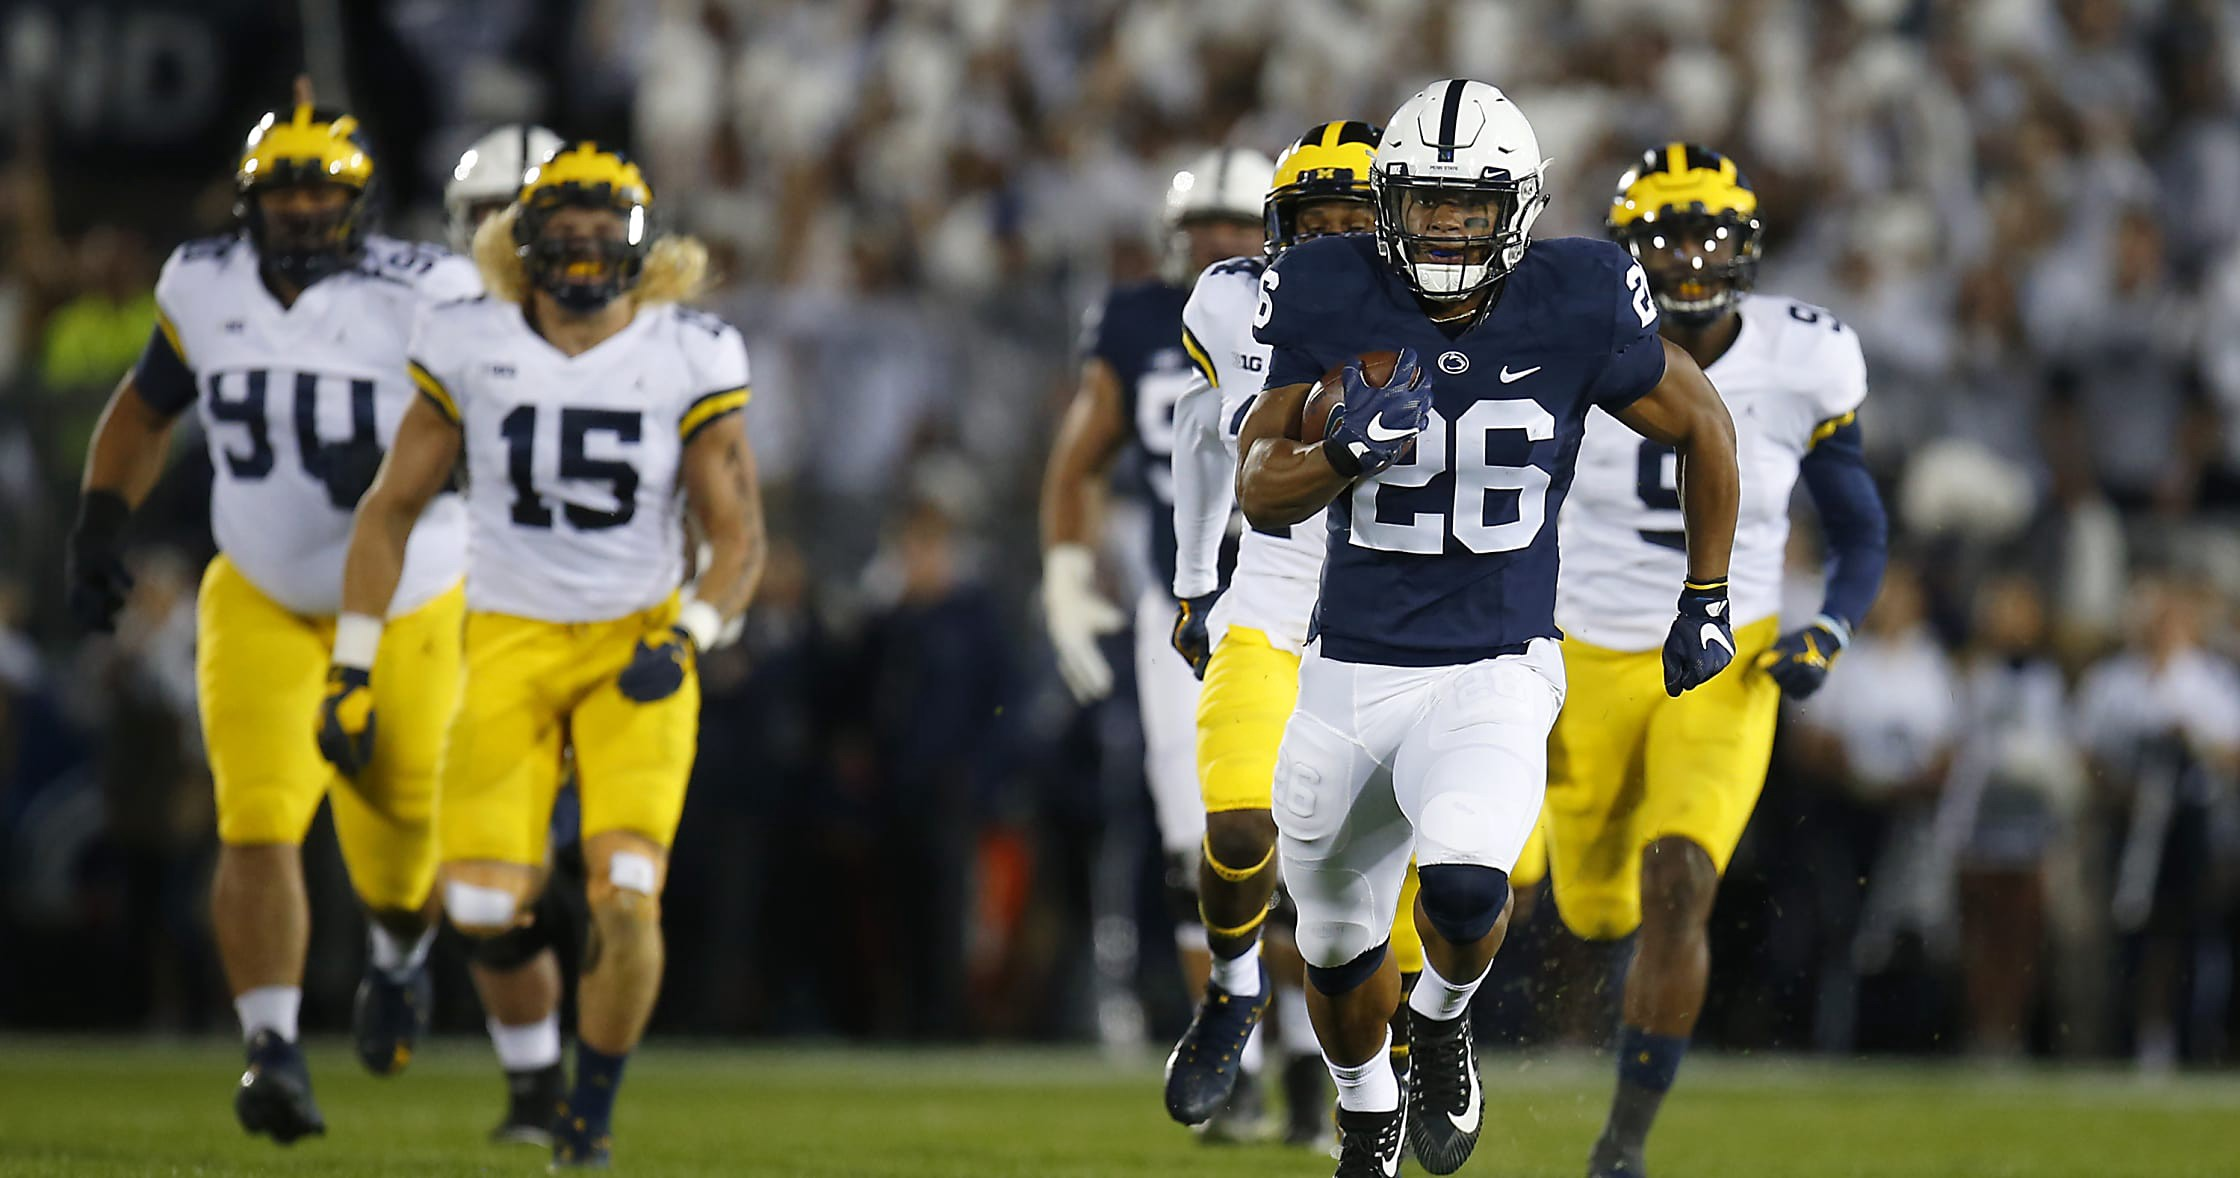 100% authentic b034b 196e5 Film Room: Why Penn State's Saquon Barkley is the perfect ...